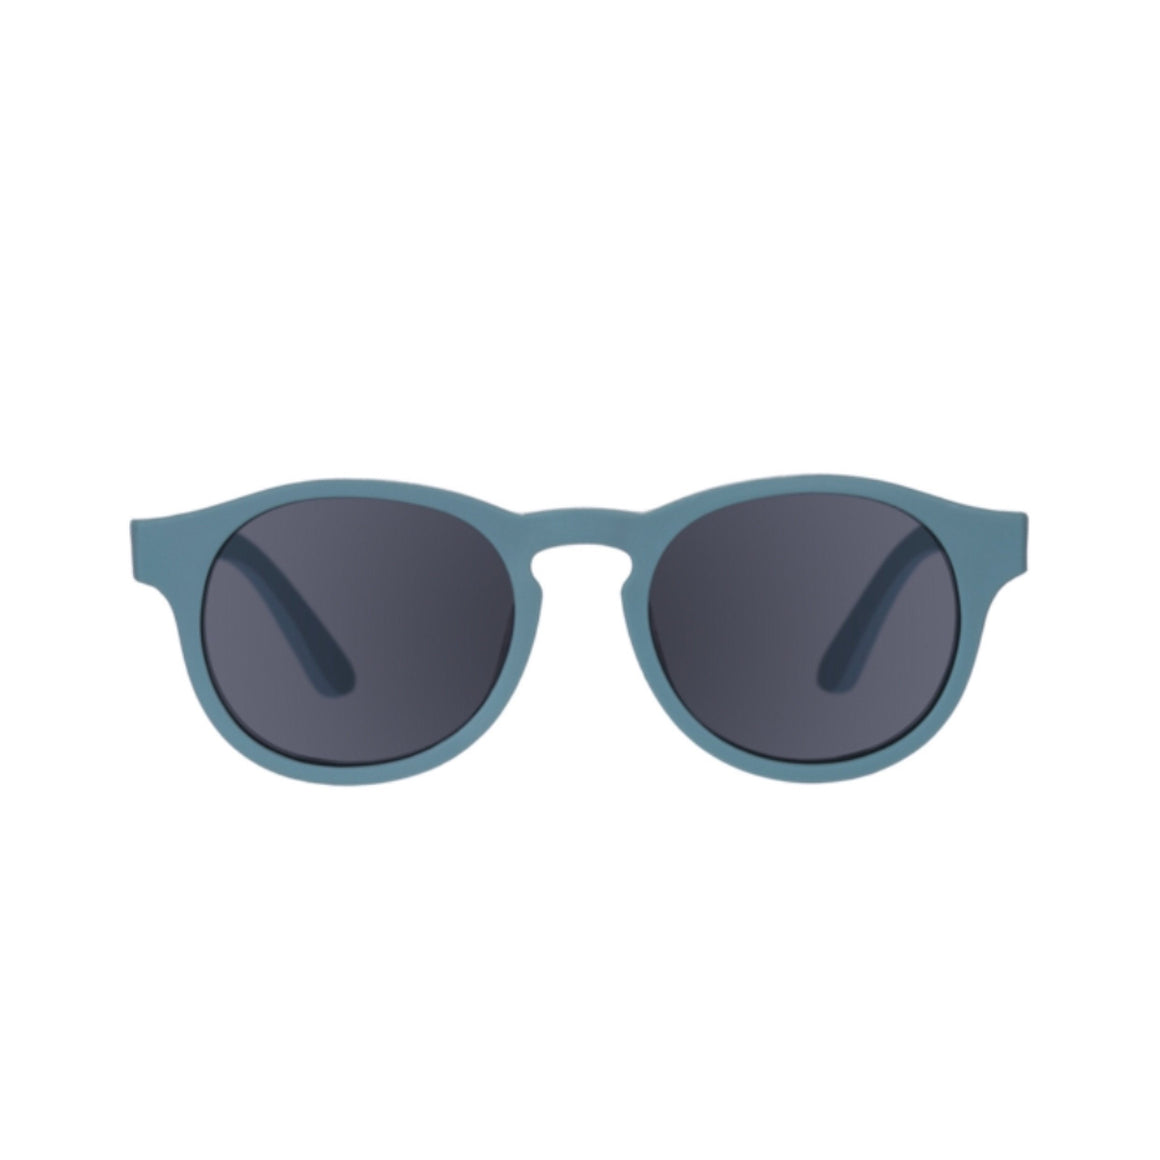 Babiators Key Hole Sunglasses - Out of the Blue Sunglasses Babiators